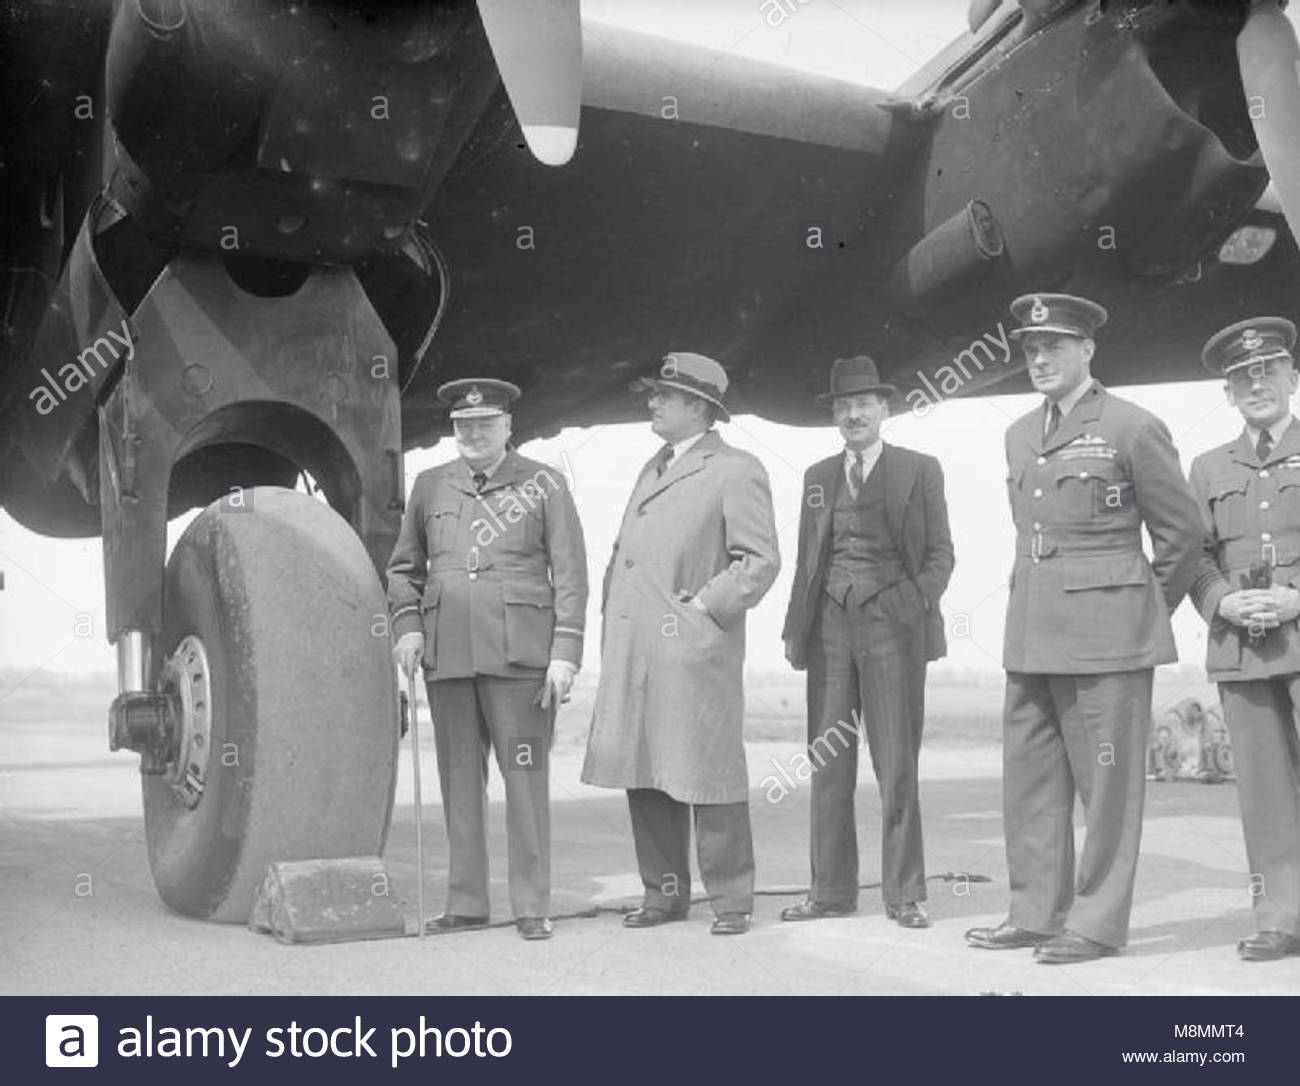 Royal Air Force 1939-1945- Bomber Command Winston Churchill, in the uniform of an Air Commodore, with Dr H V Evatt - Stock Image